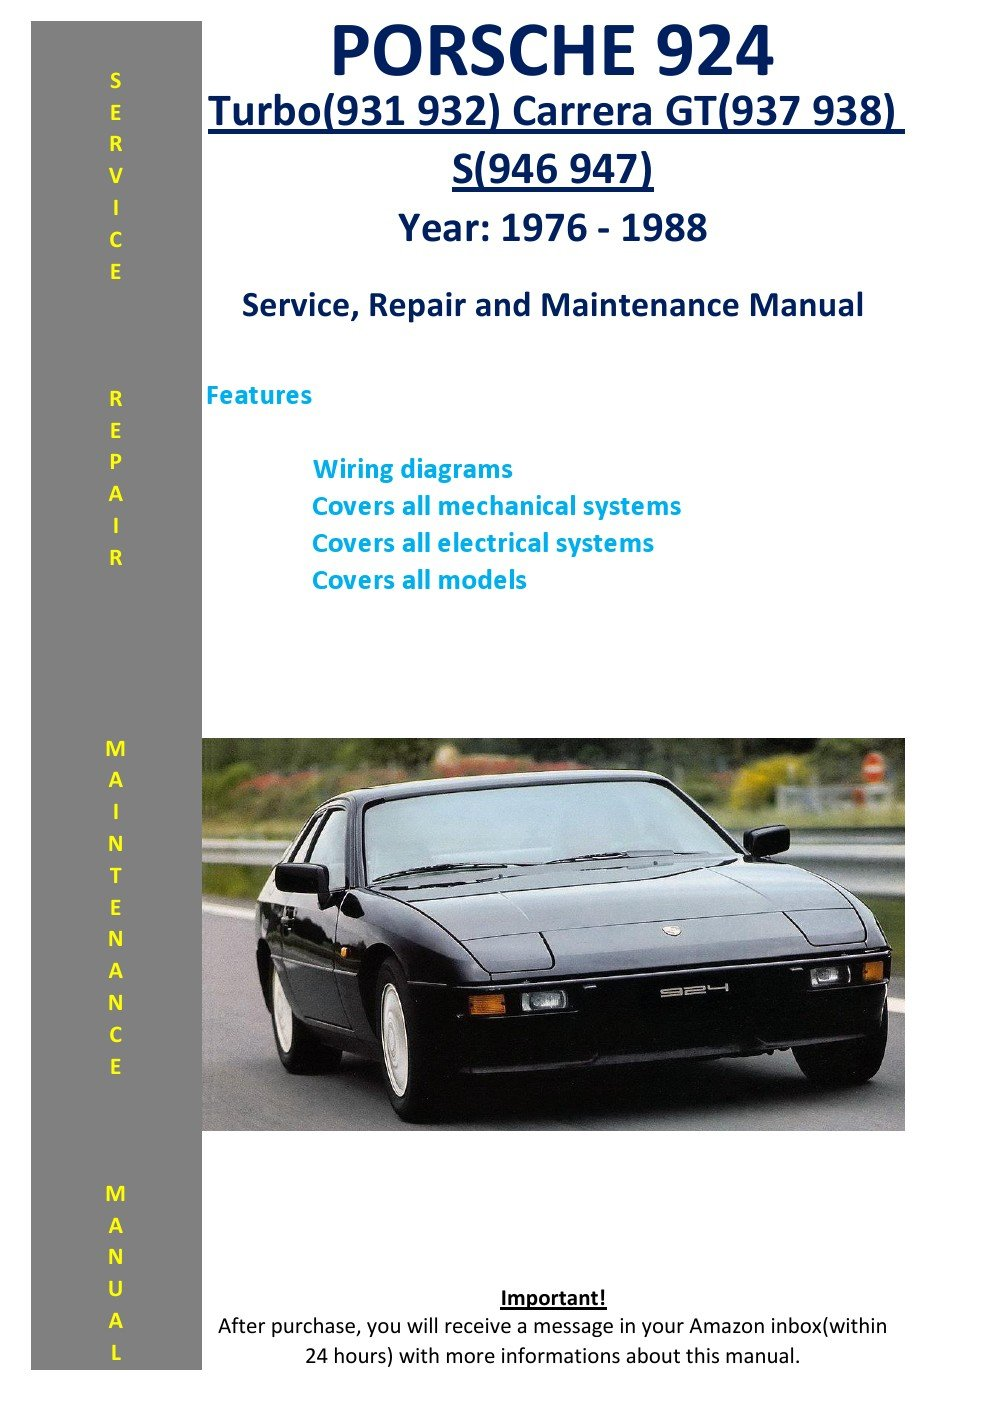 Porsche 924 Turbo (931 932) Carrera Gt (937 938) S (946 947) From 1976 - 1988 Service Repair Maintenance Manual: SoftAuto Manuals: 5826002600452: ...